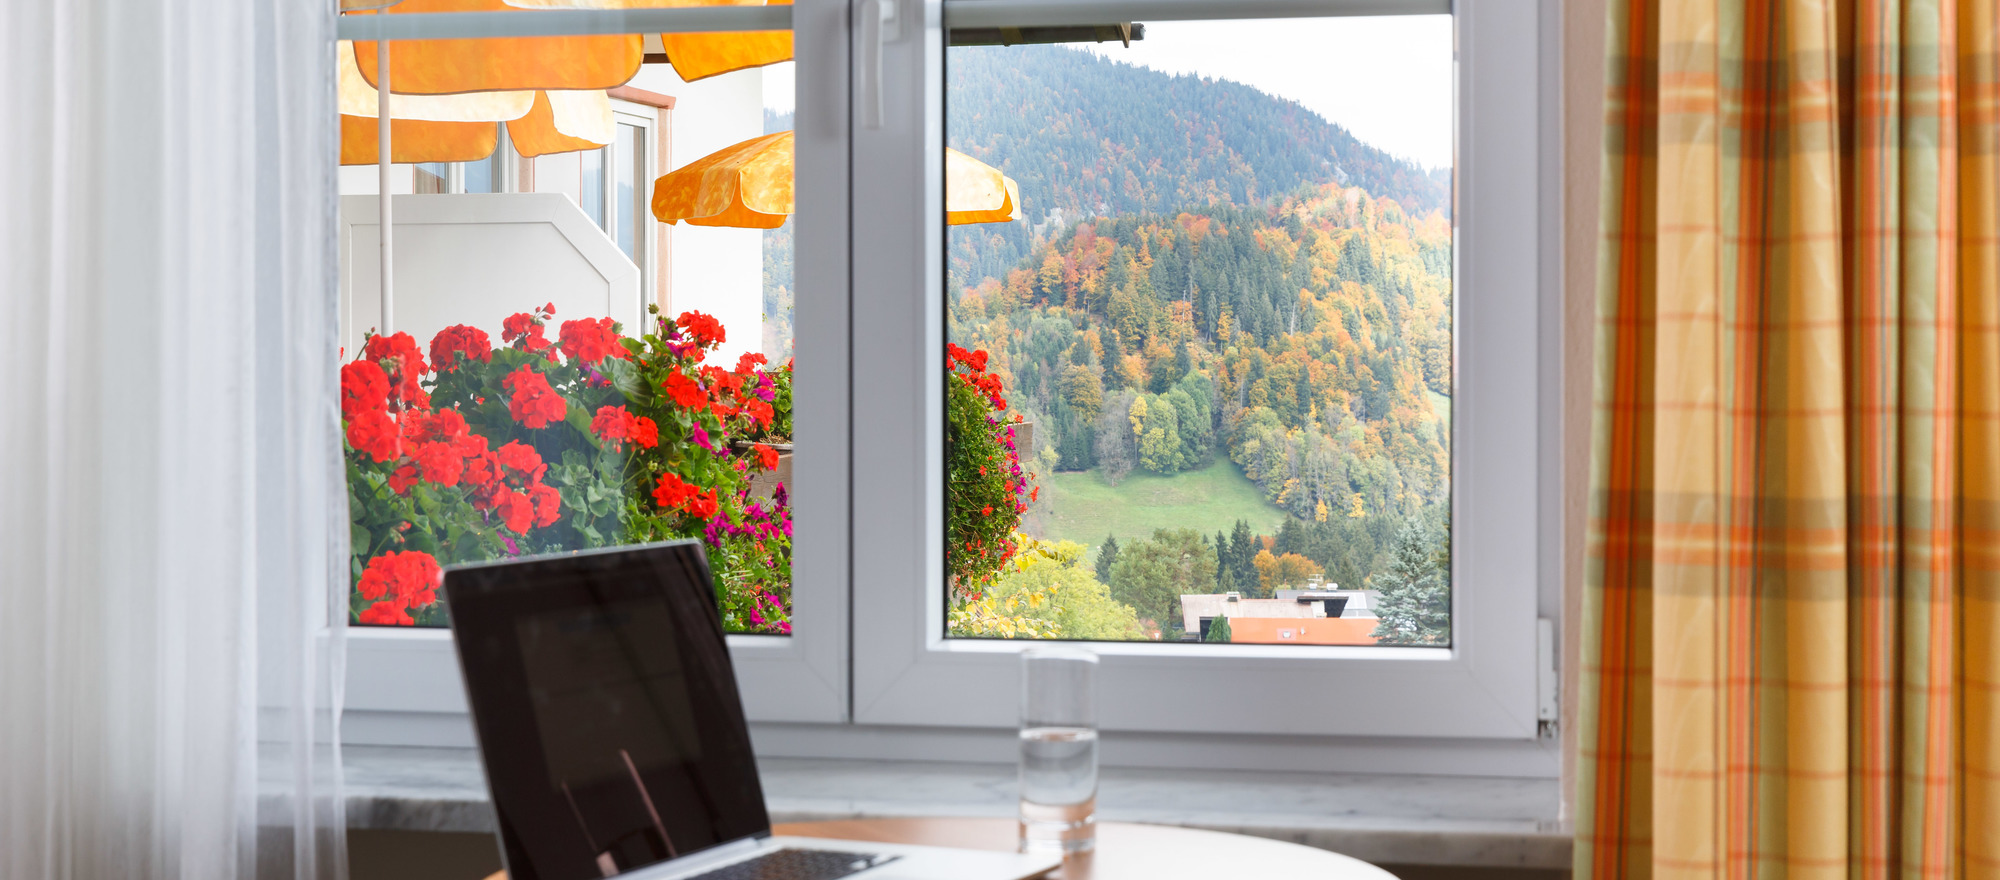 Desk with laptop on it, Ringhotel Ferienhotel Nebelhornblick in Oberstdorf, 4 -star hotel in the Allgaeu